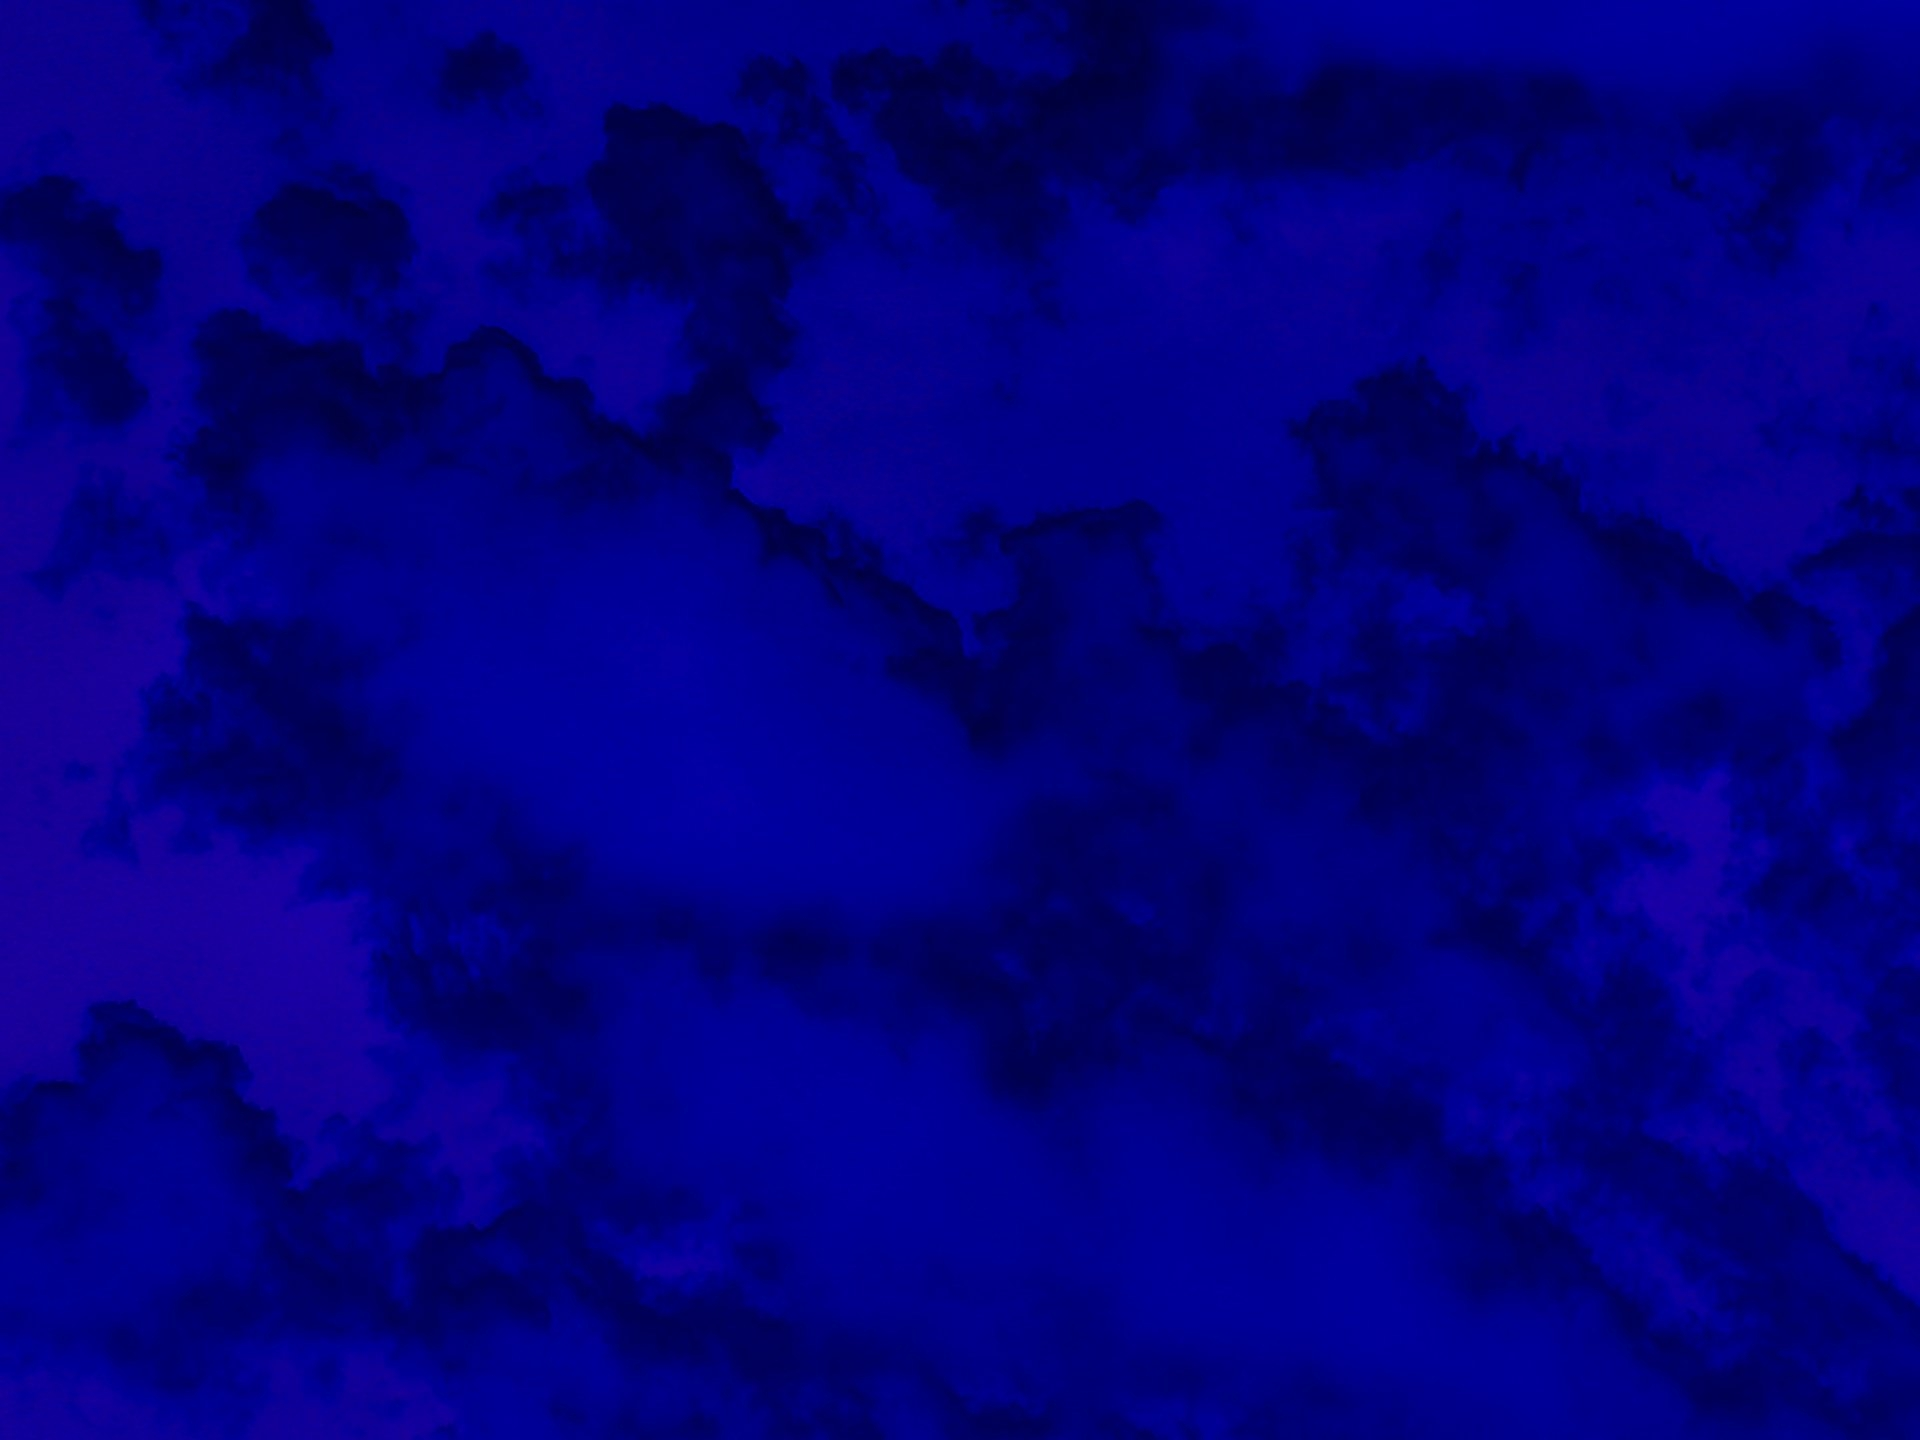 Blue Cloud Background Texture